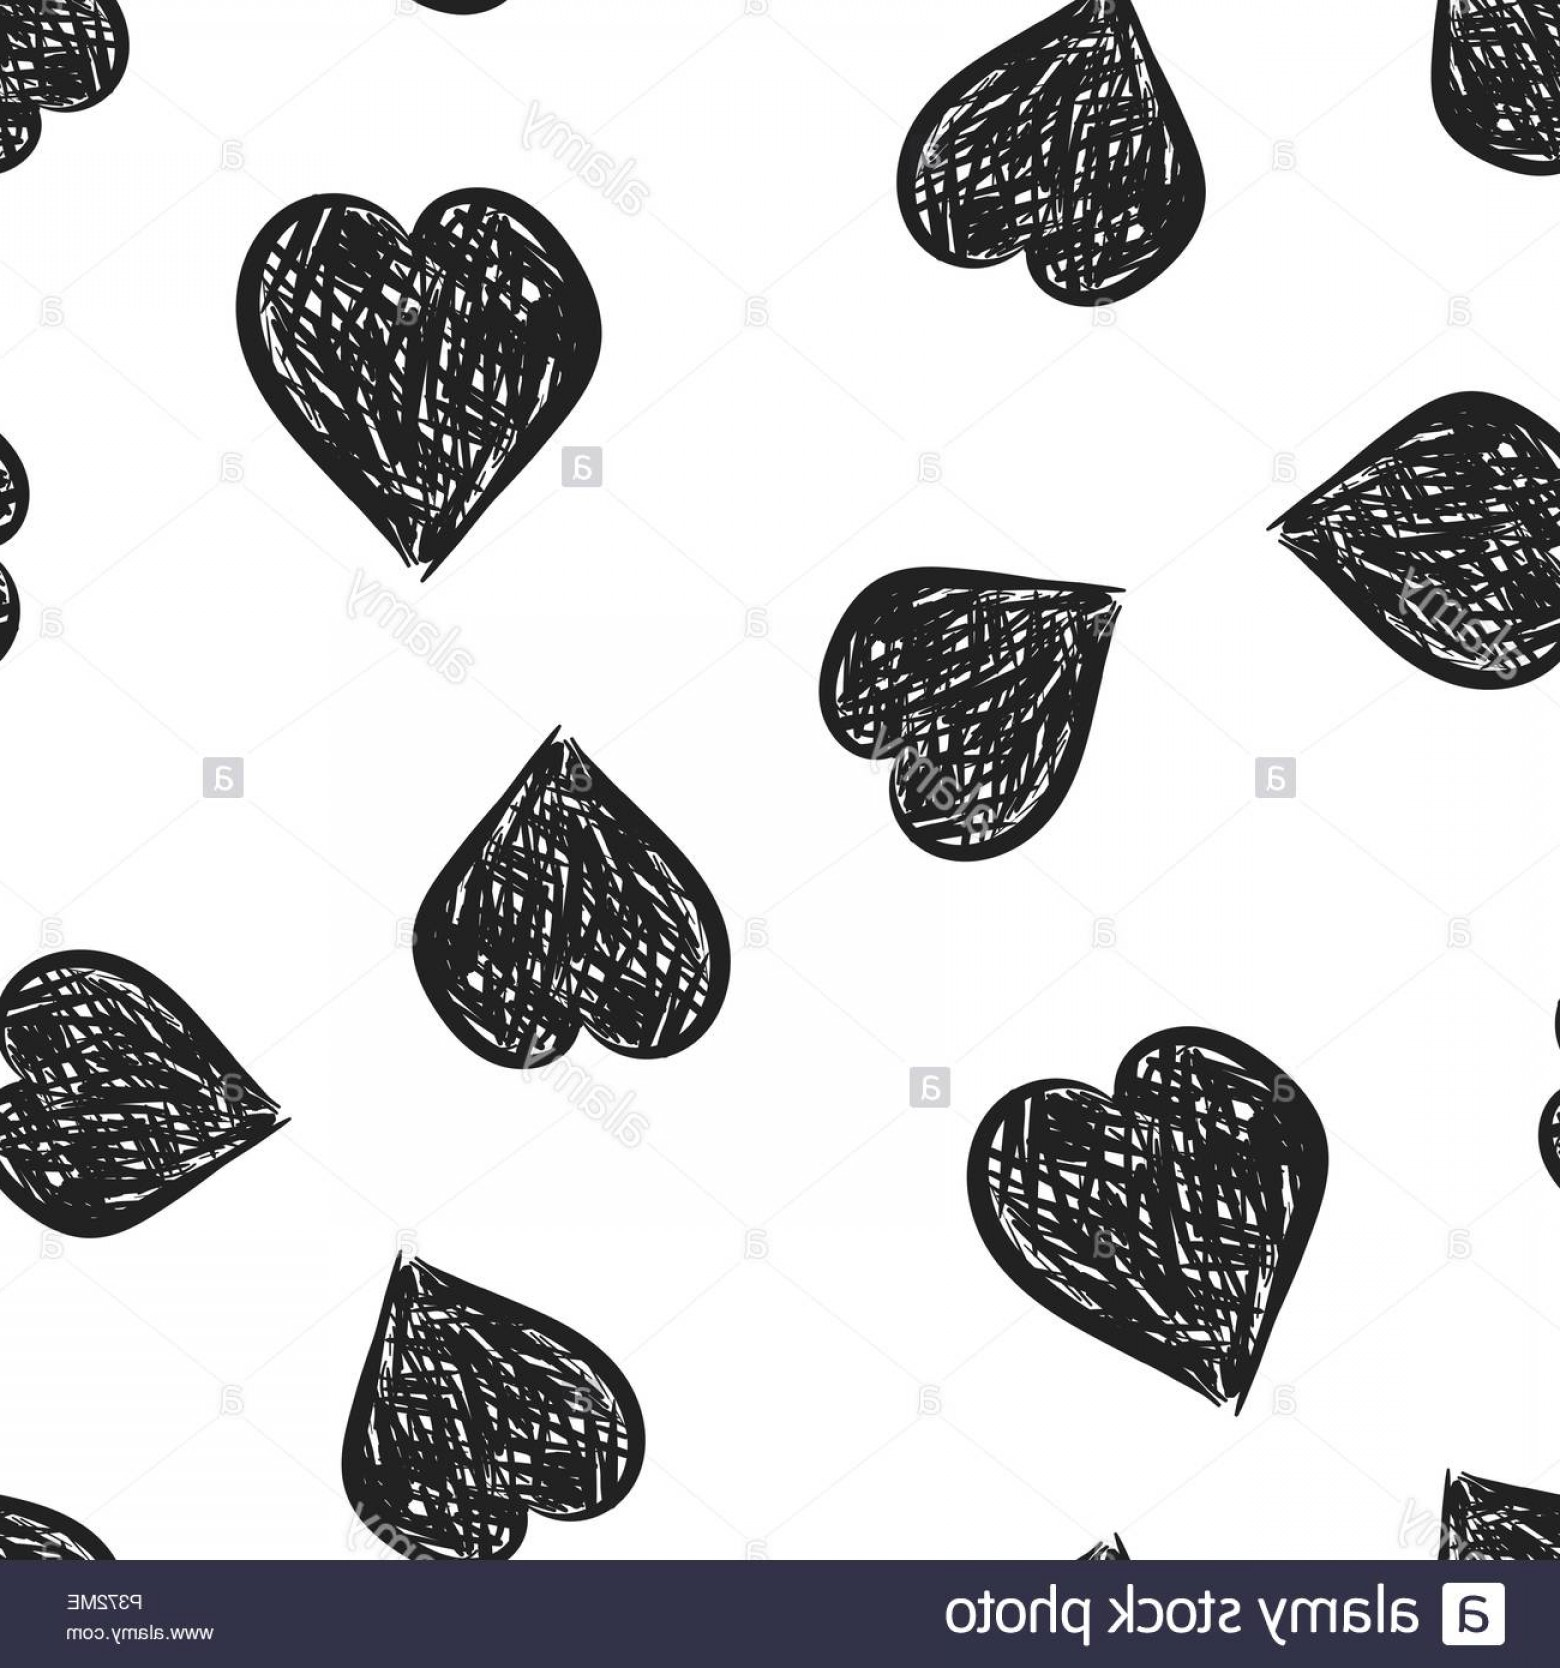 Cool Vector Hearts Pattern Symbol Pattern: Hand Drawn Hearts Icon Seamless Pattern Background Business Concept Vector Illustration Love Sketch Doodle Heart Symbol Pattern Image